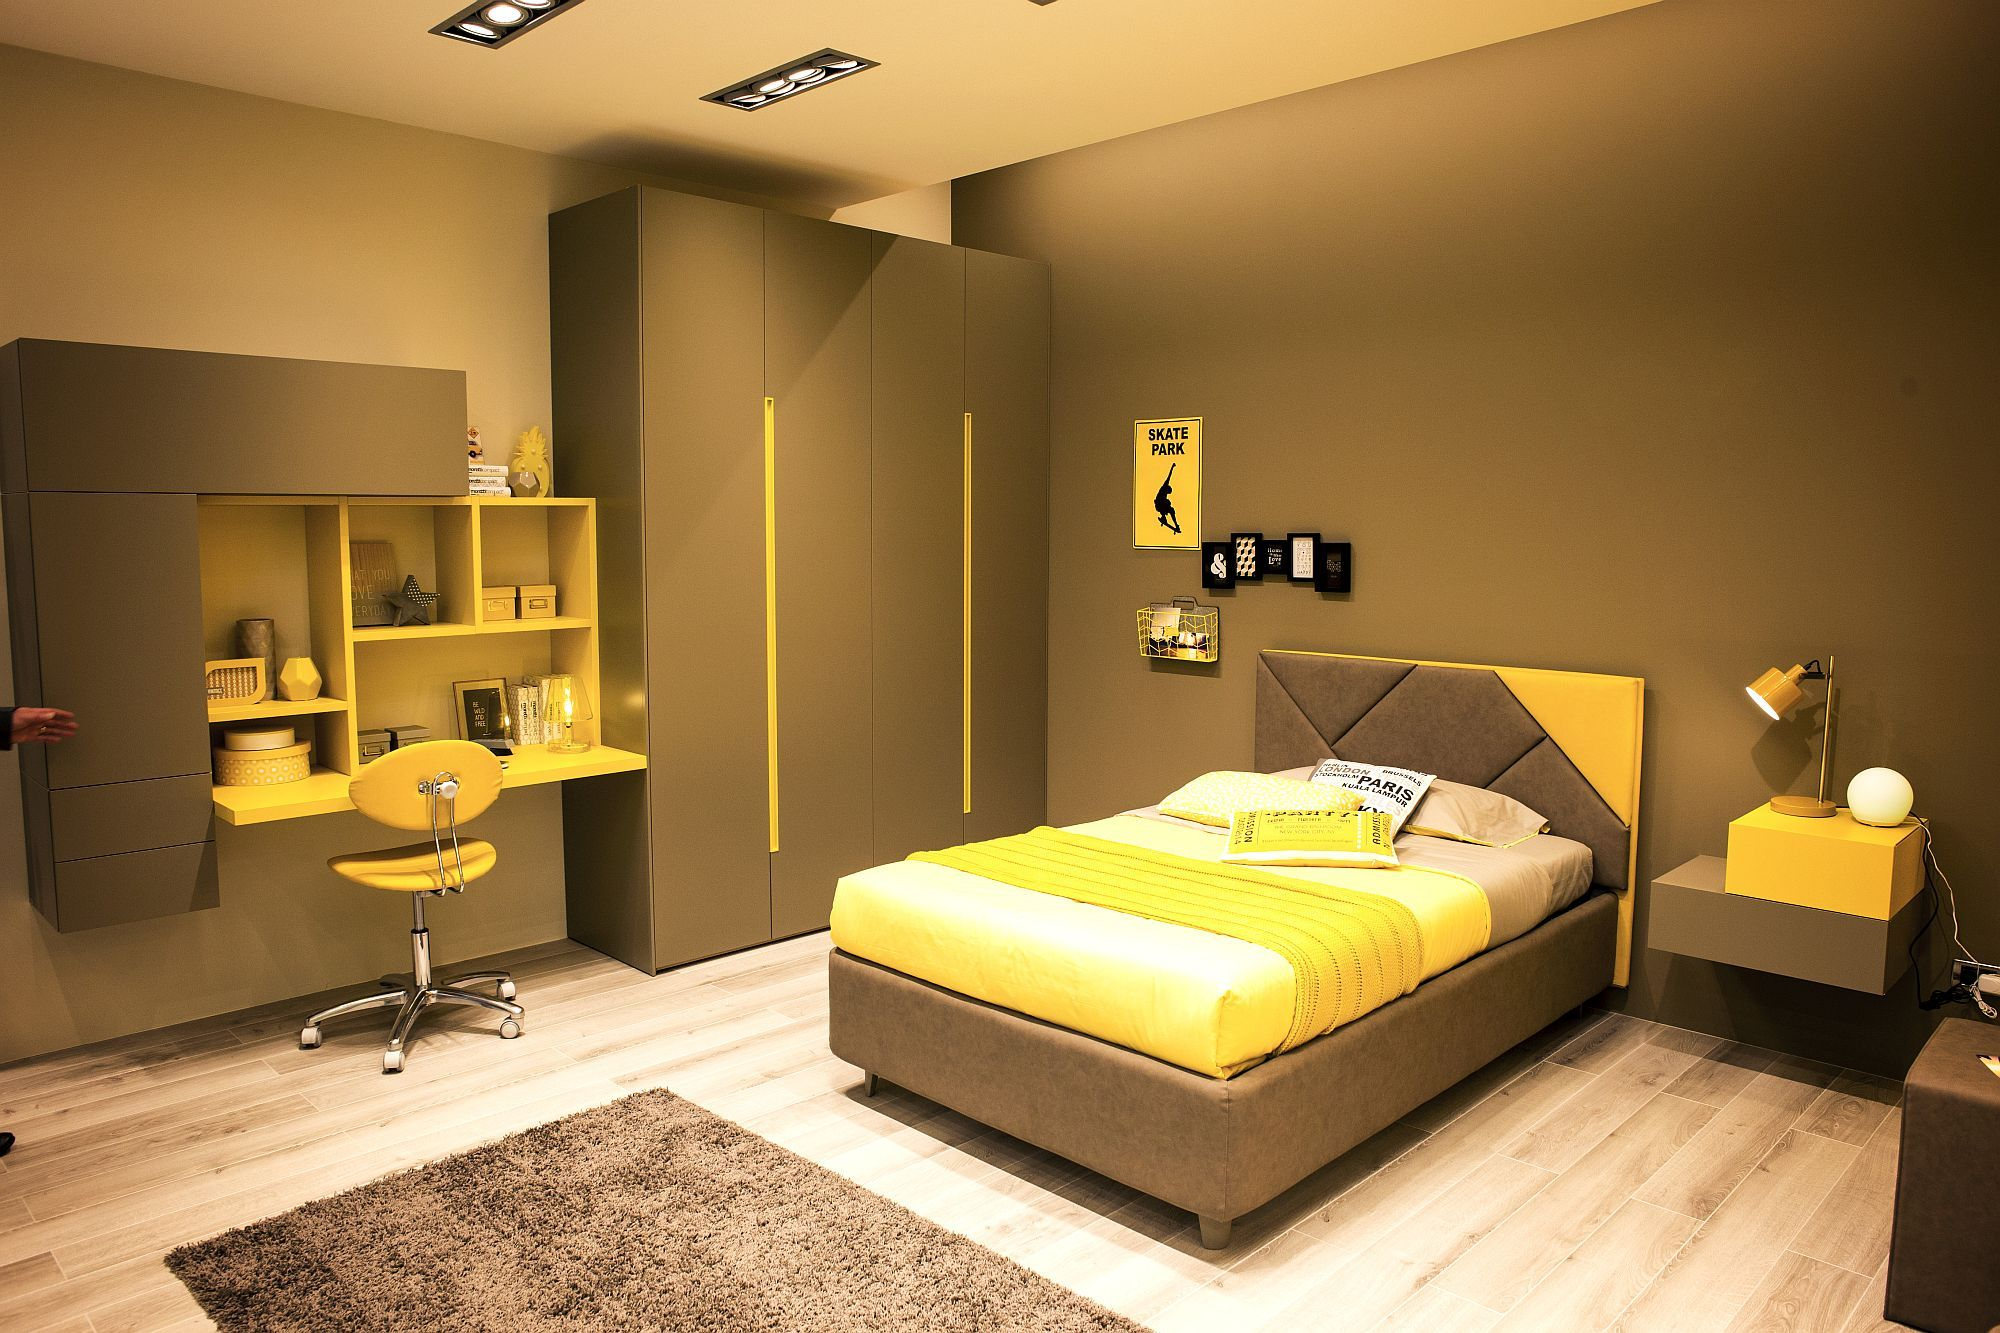 Tips About Home Interior Design – Redecorating Your Home